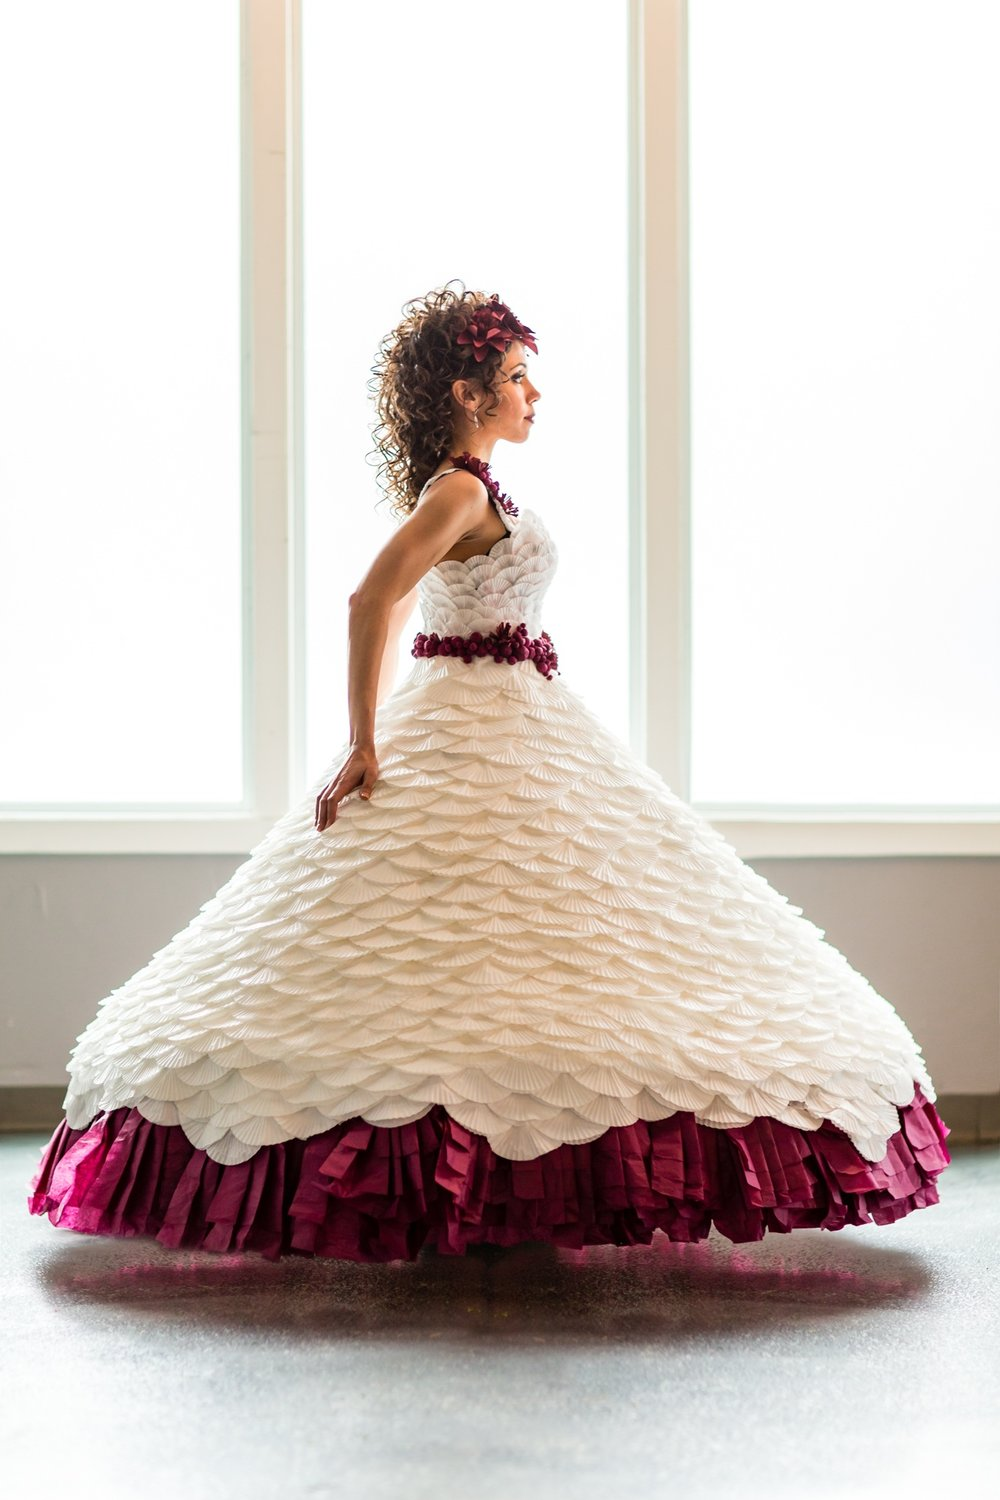 Burgundy and white paper wedding dress styled shoot in Minneapolis Minnesota